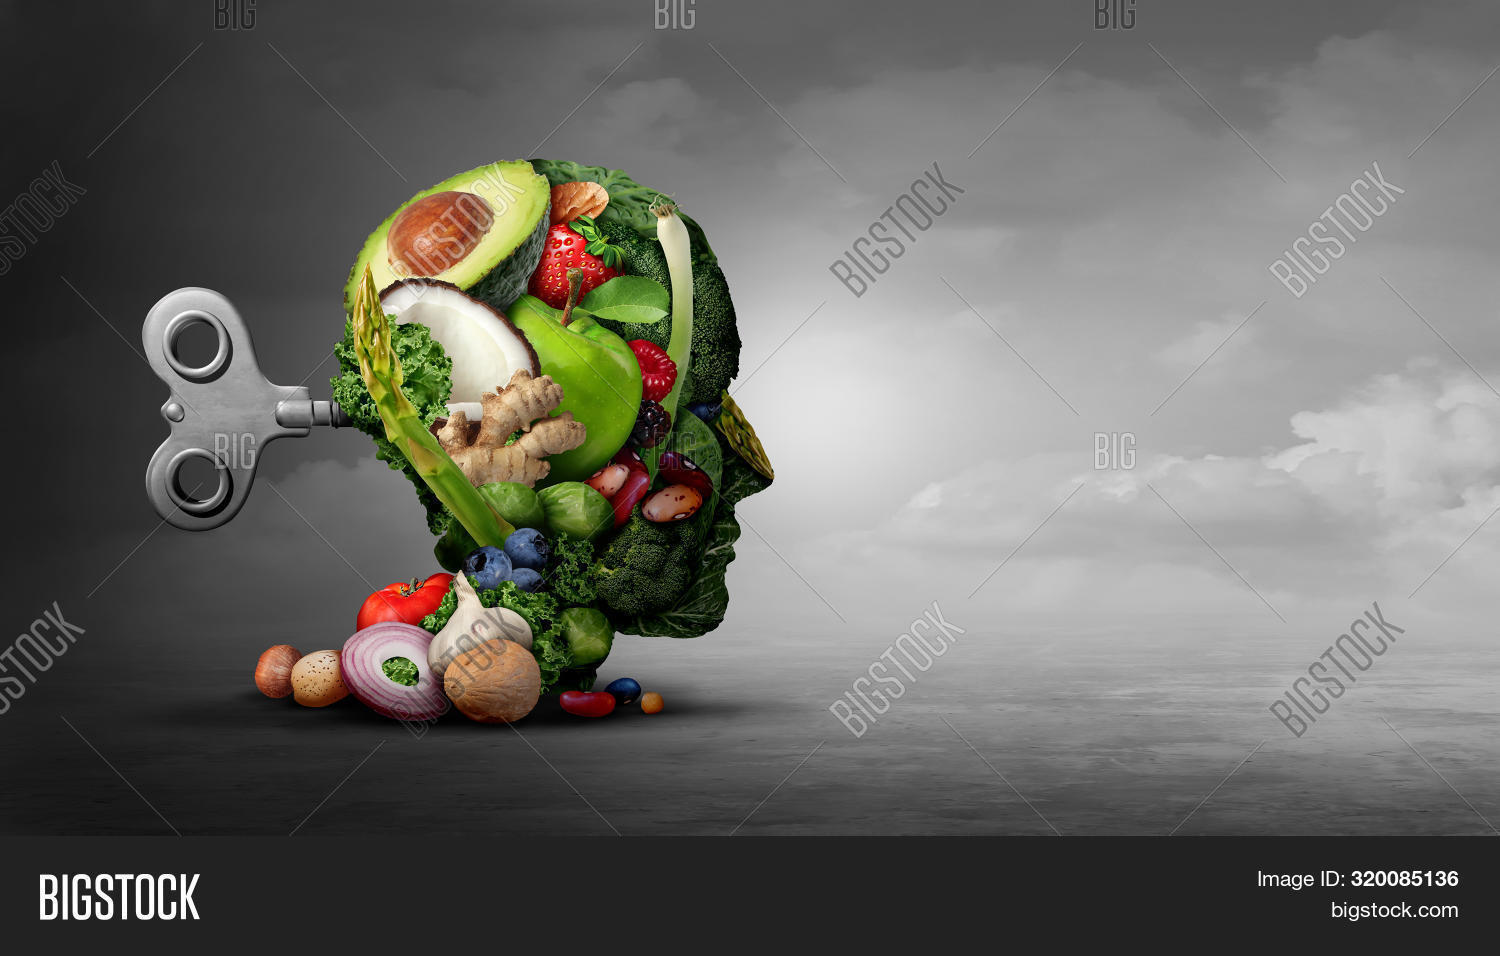 3D,addiction,cognition,cognitive,concept,depression,diabetes,diet,effects,elements,food,functioning,health,illustration,key,lifestyle,medicinal,medicine,mental,natural,obesity,psychiatric,psychiatry,psychosis,therapeutic,thinking,vegan,vegetarian,vegetarianism,veggies